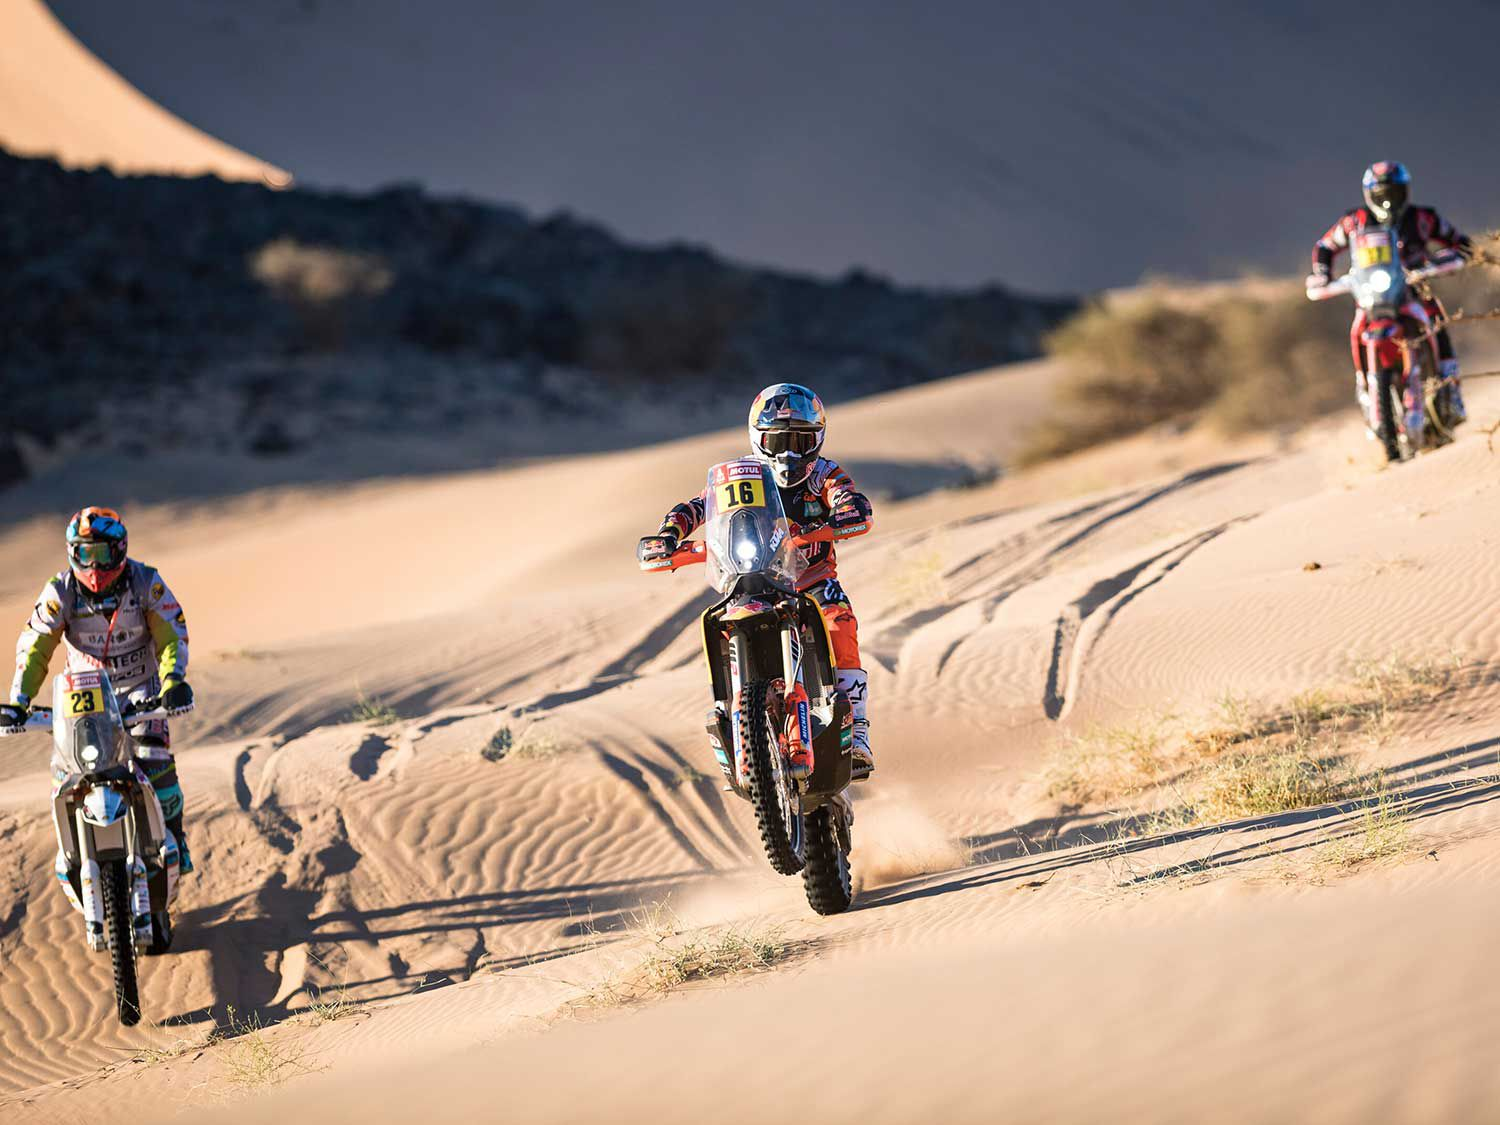 Red Bull KTM Factory rider Luciano Benavides (Argentina) at the finish line of Stage 3 of 2020 Dakar Rally at Neom.